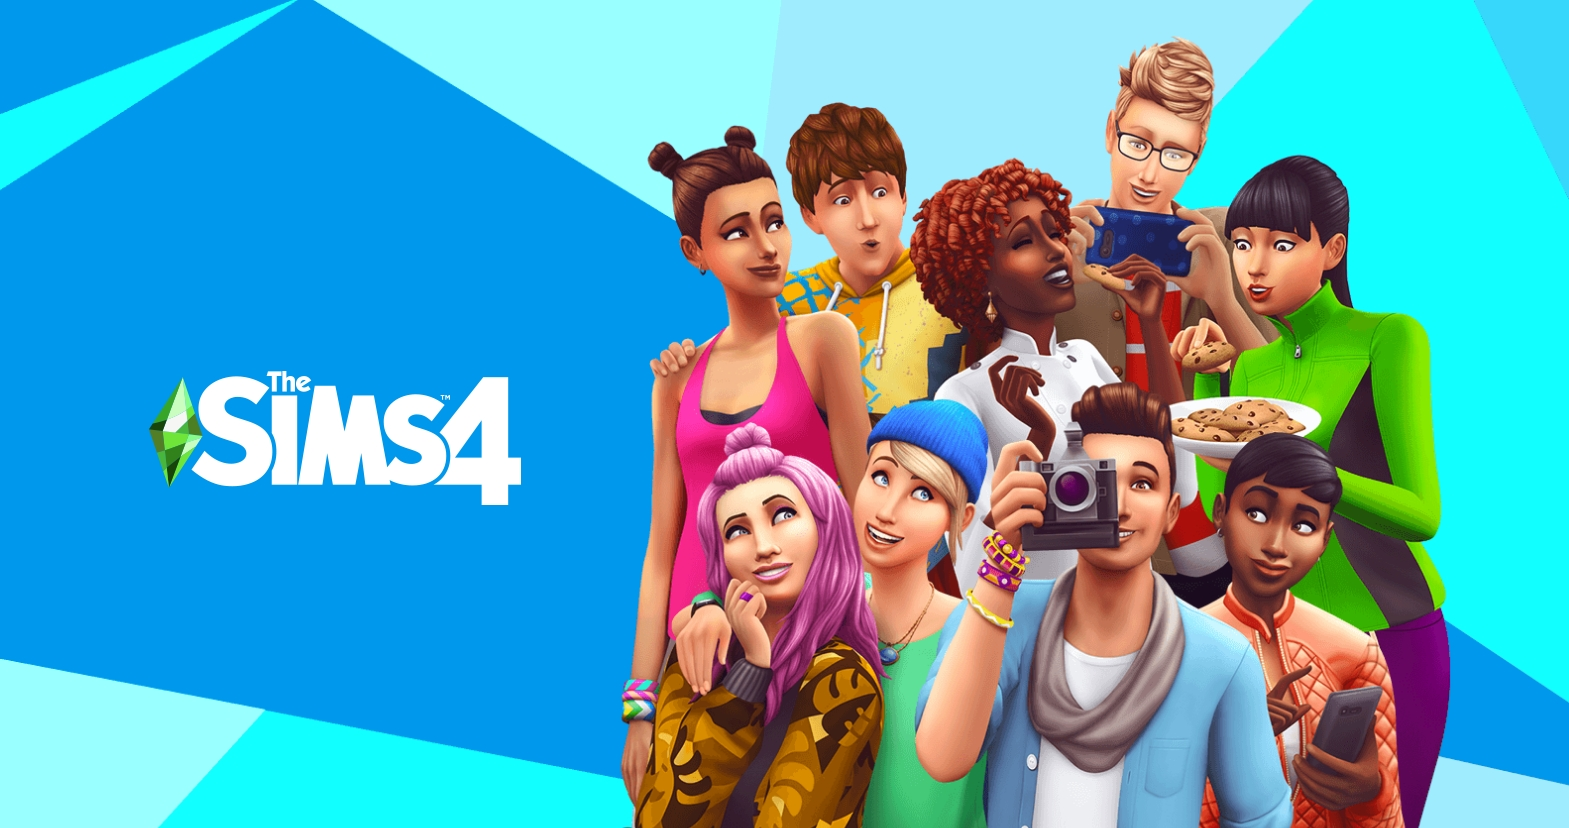 The Tenth Sims 4 Expansion Pack Will Be Announced Next Week